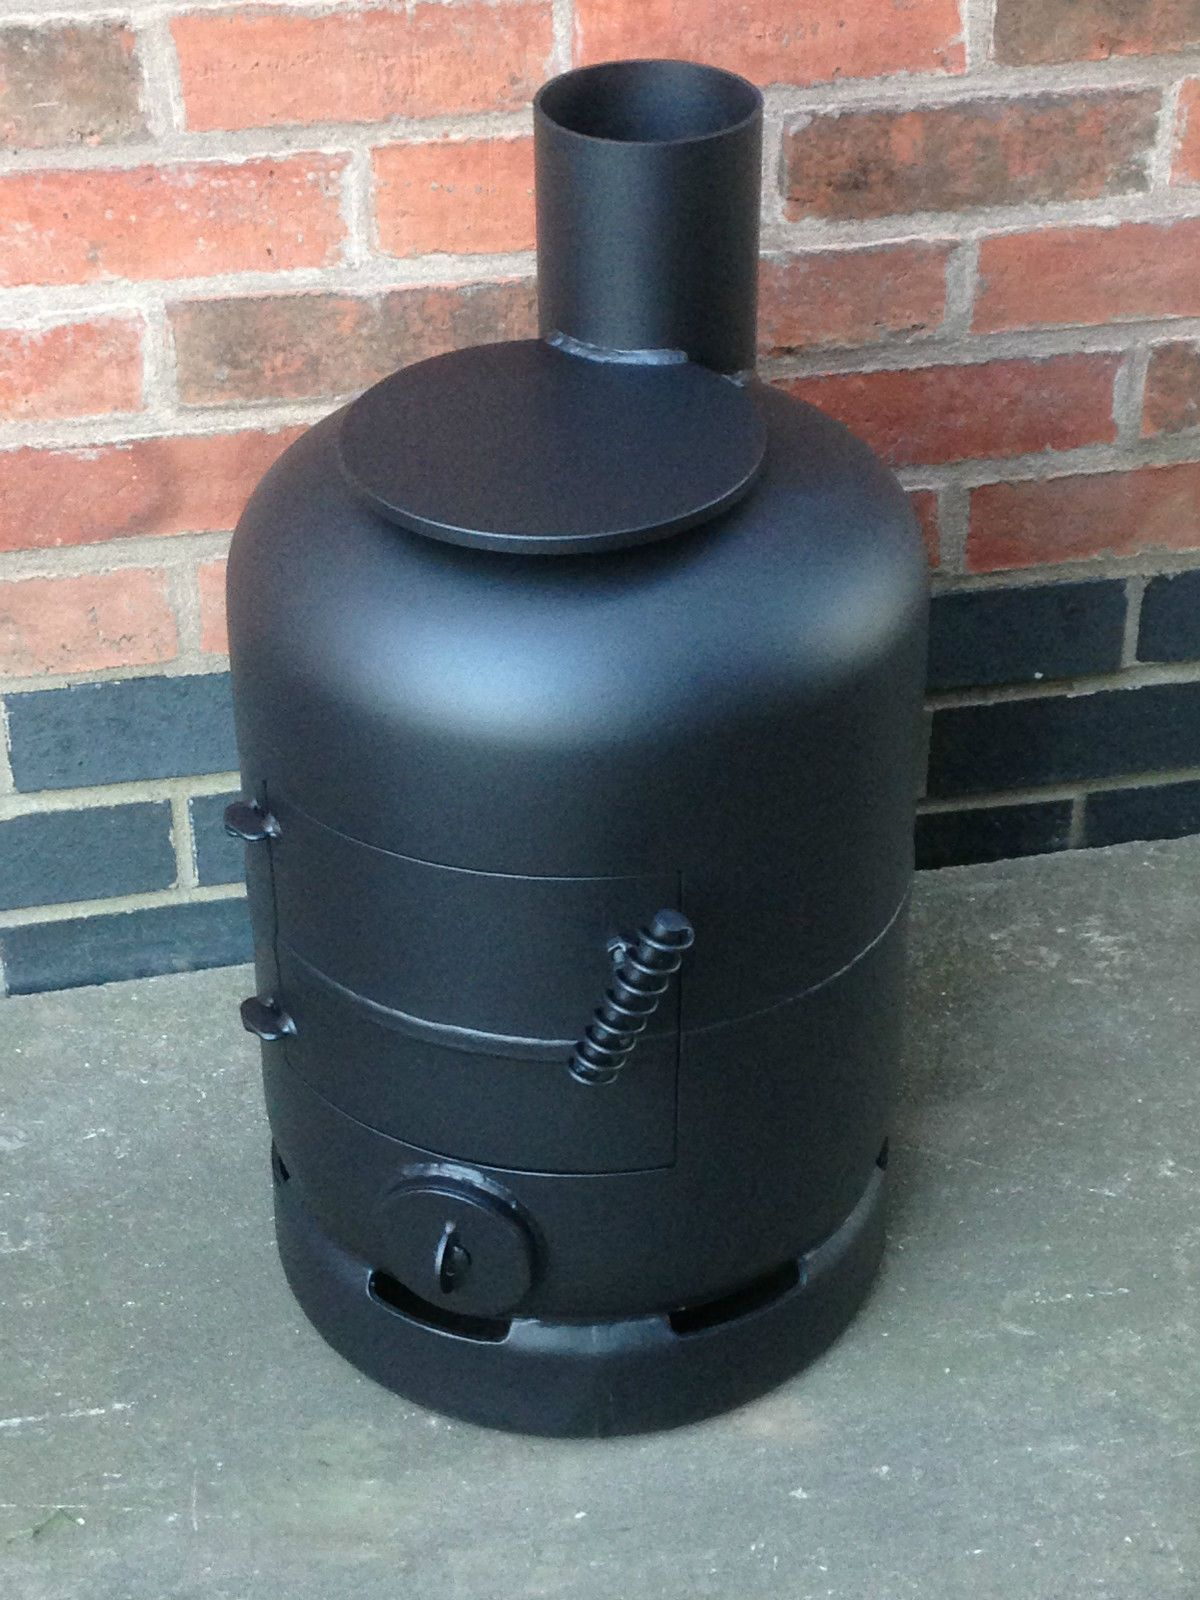 r sultat de recherche d 39 images pour gas bottle rocket stove selber bauen ofen feuerstelle. Black Bedroom Furniture Sets. Home Design Ideas